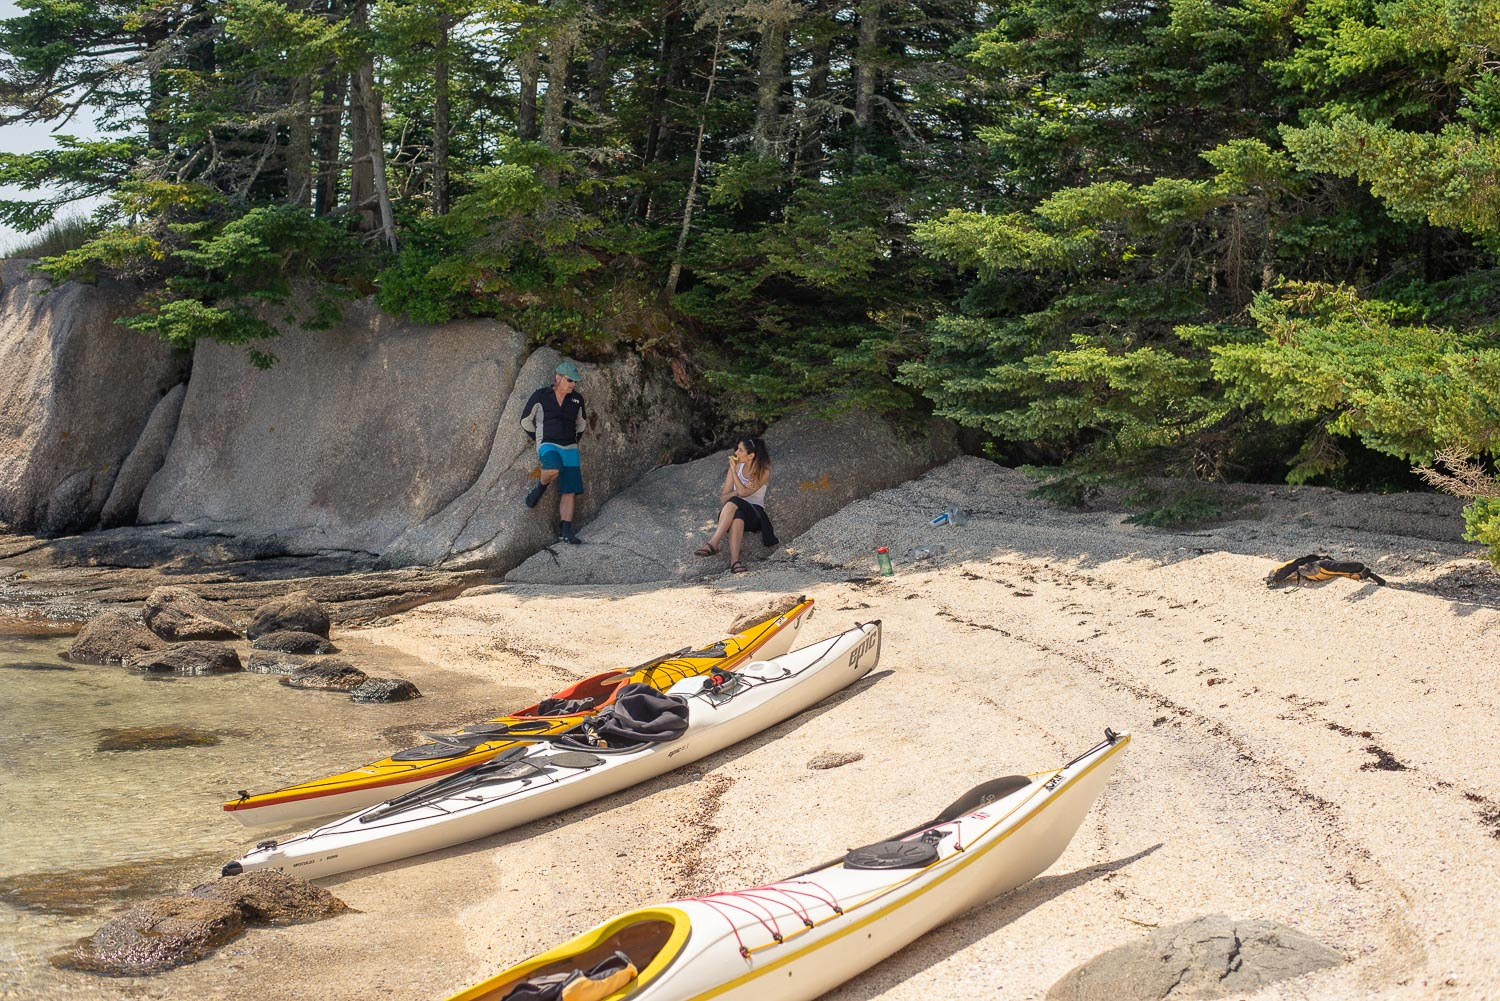 One Day Trips - Enjoy a guided sea kayak tour of the pristine Maine Island Trail. Explore rocky inlets, sheltered coves, and the beautiful New England pine woods reaching down to the water's edge.